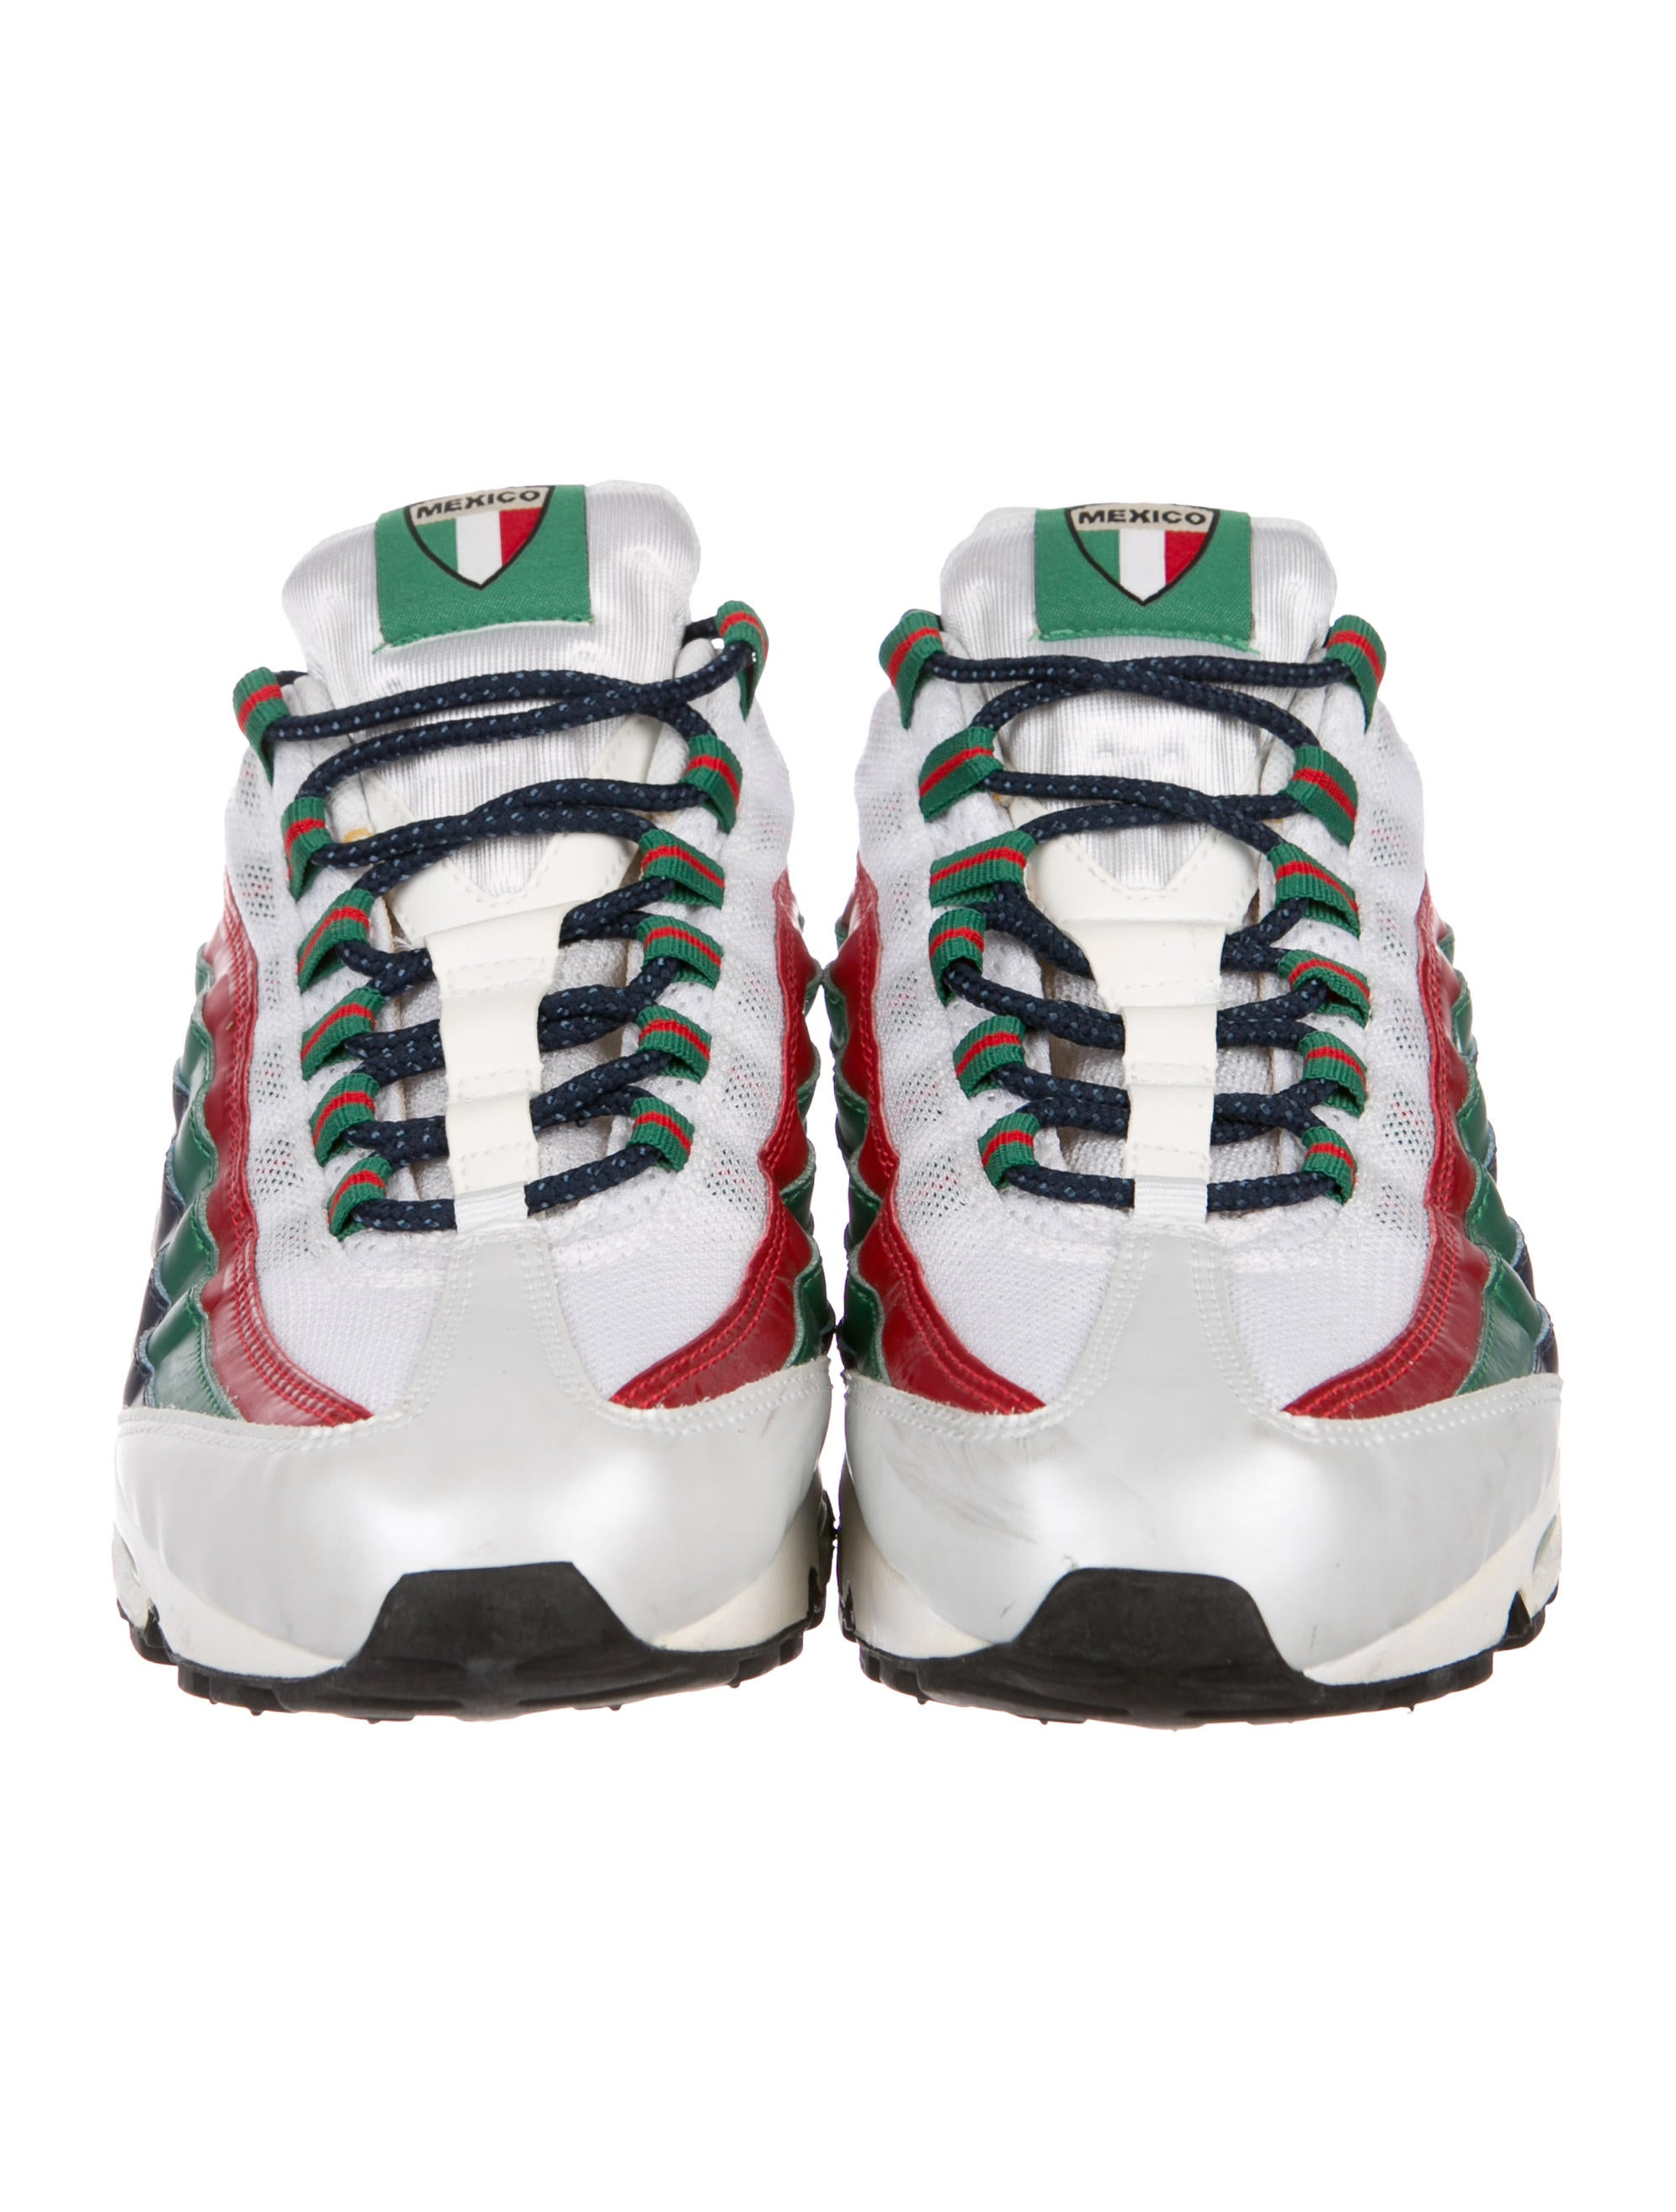 Nike Air Max 95 Mexico World Cup Sneakers Shoes WU224859